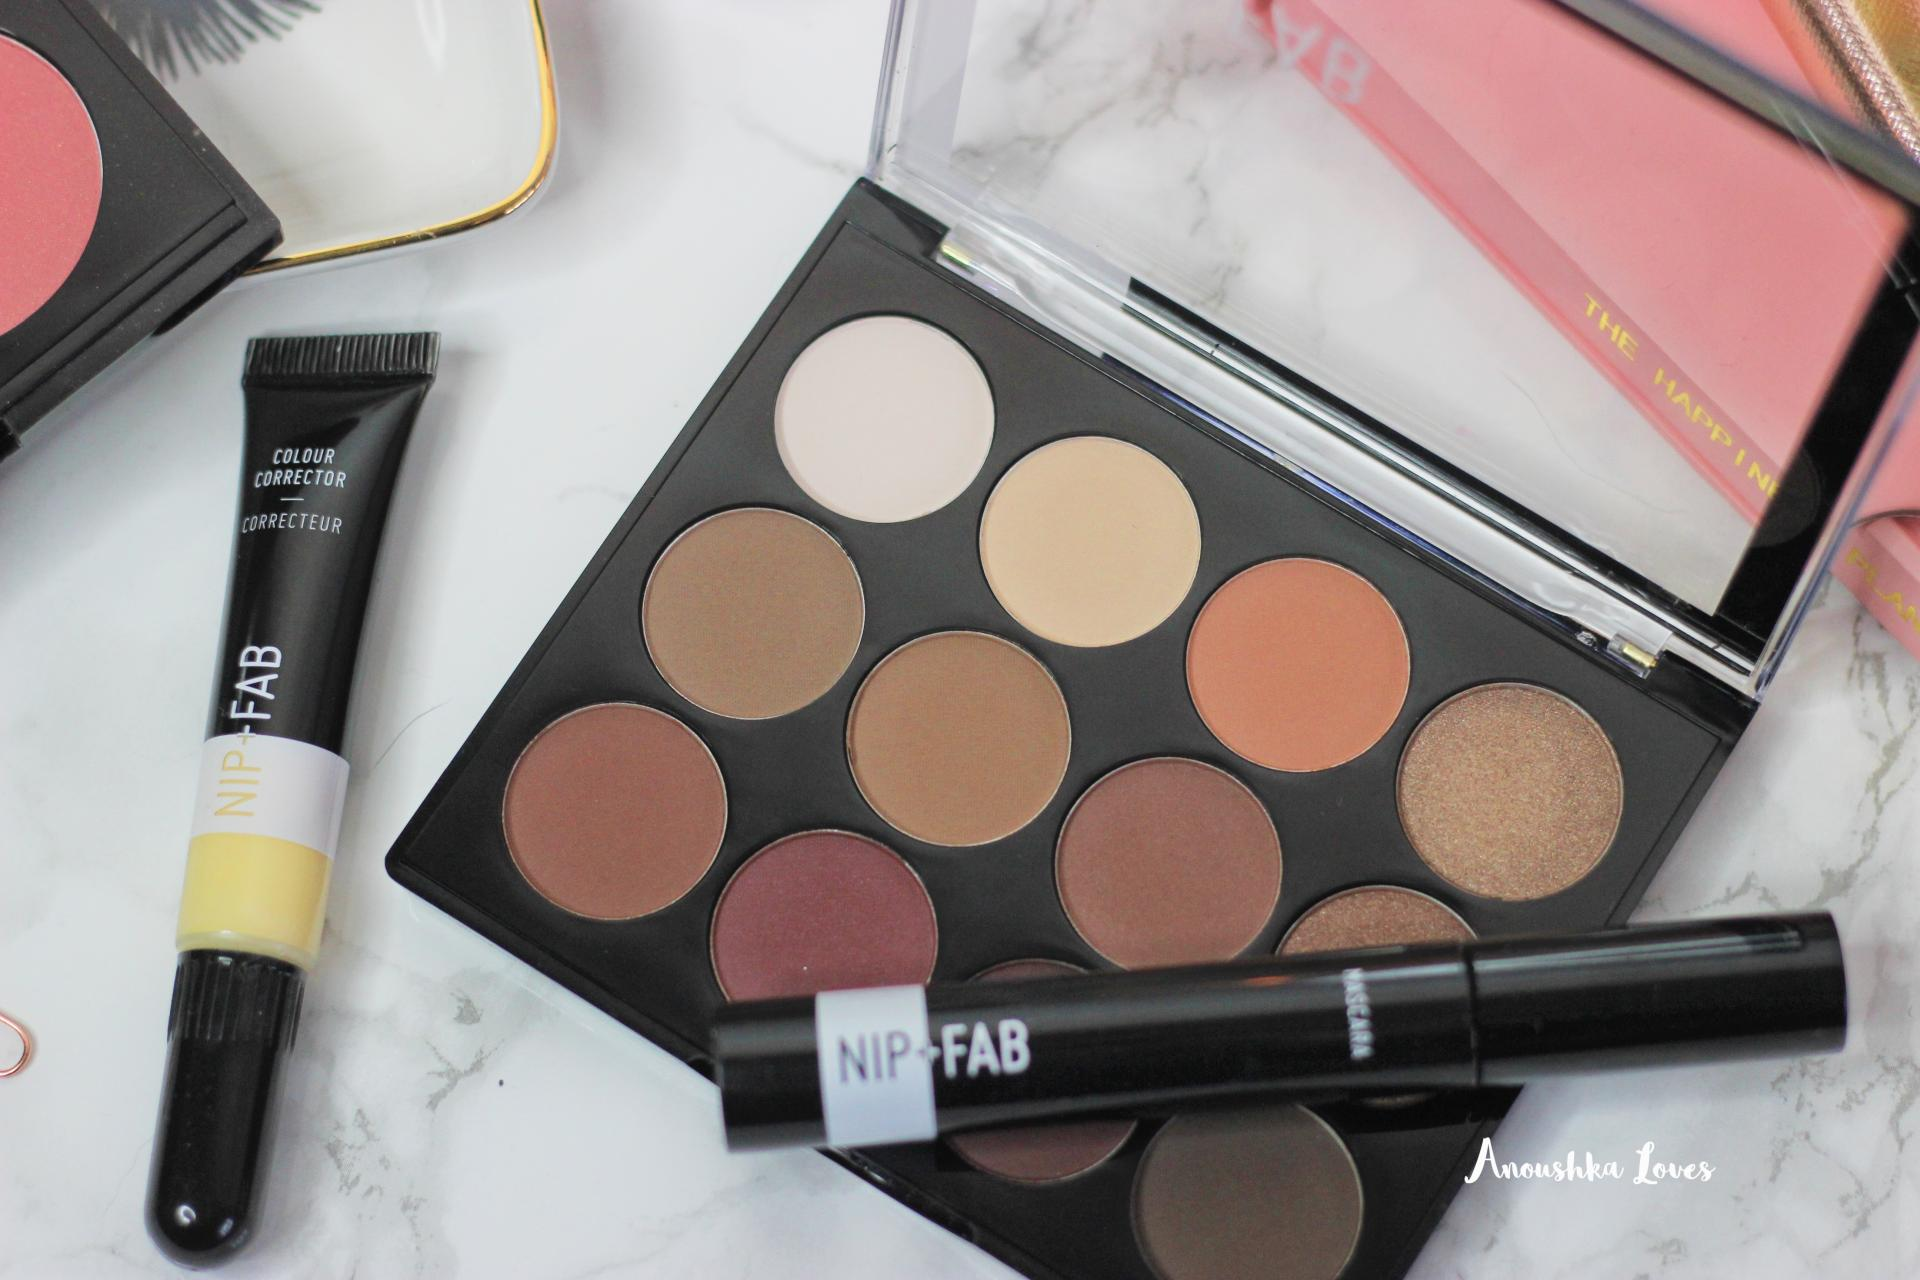 The Nip + Fab Make Up Range